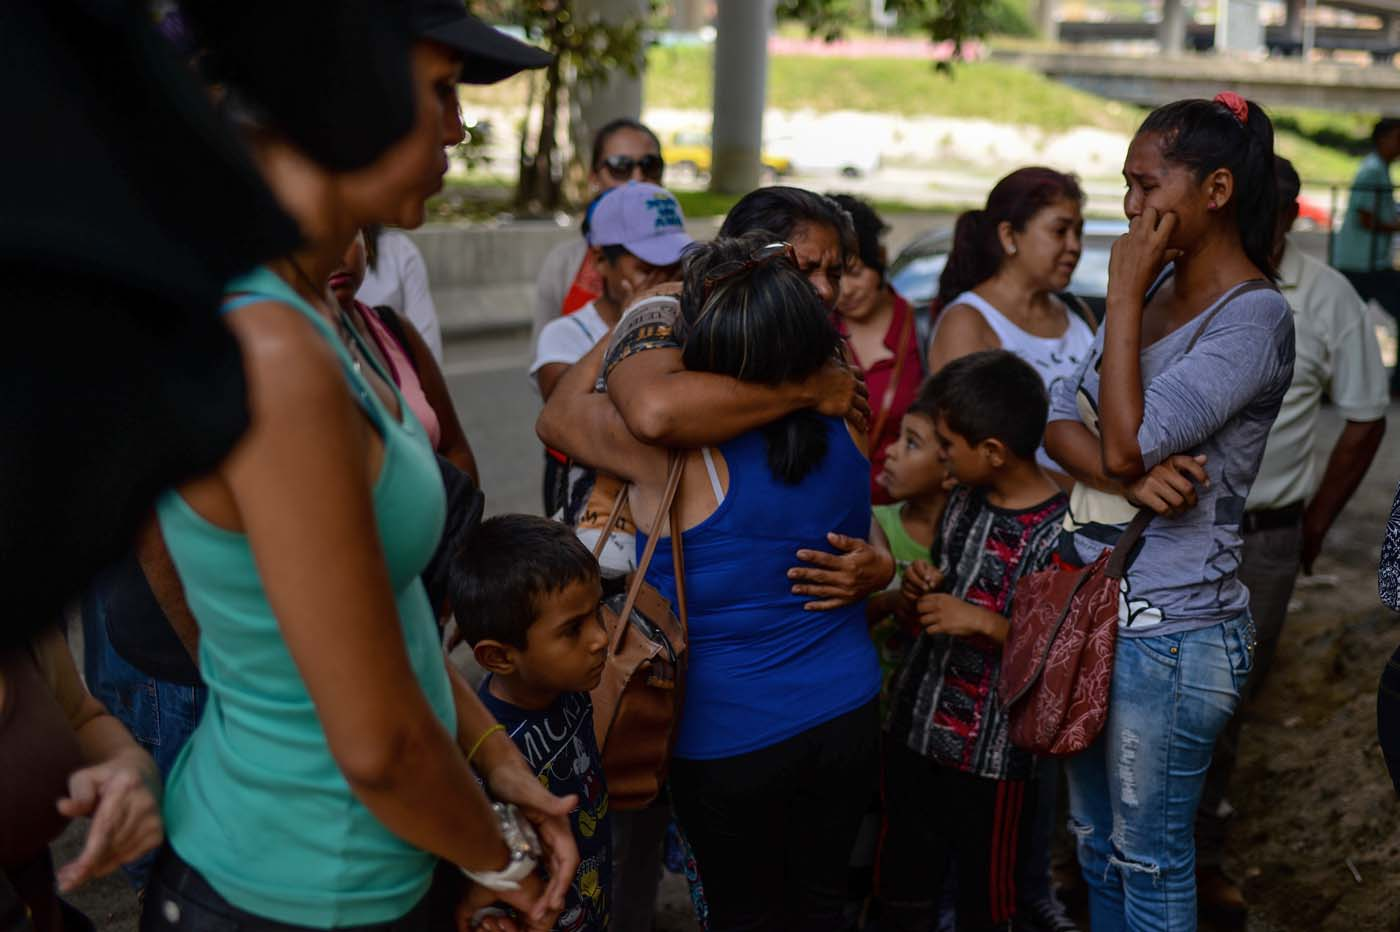 People bid farewell to relatives before boarding a bus at a station in Caracas on October 11, 2017 as scores of disappointed Venezuelans who see no end to the crisis choose to leave the country. Venezuela, which holds regional elections on October 15, is a country at the top of the Latin American continent that is in deep economic and political crisis. / AFP PHOTO / Federico PARRA